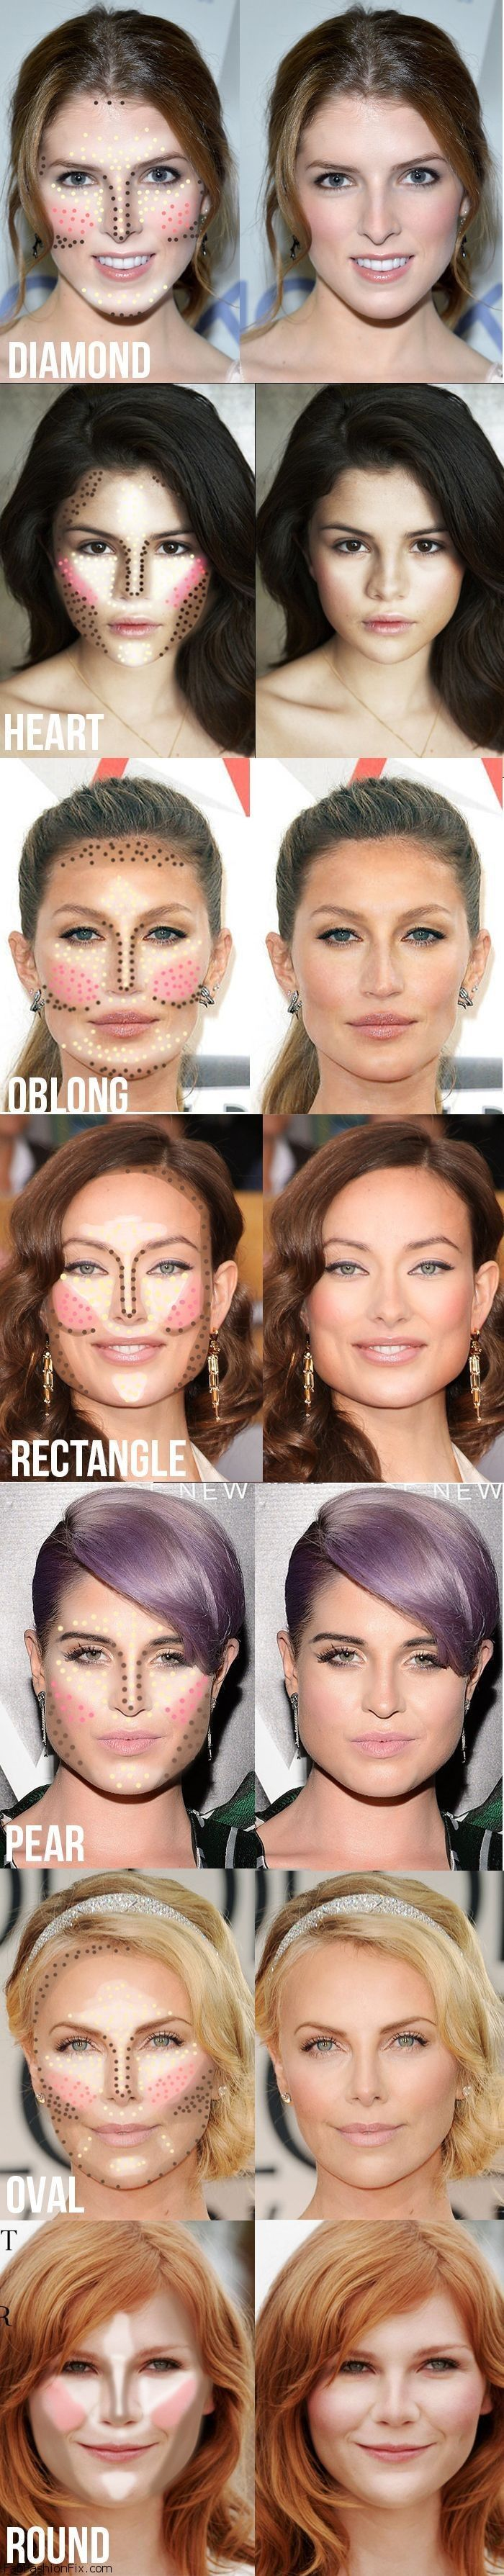 How to highlight and contour your face with makeup like a pro?